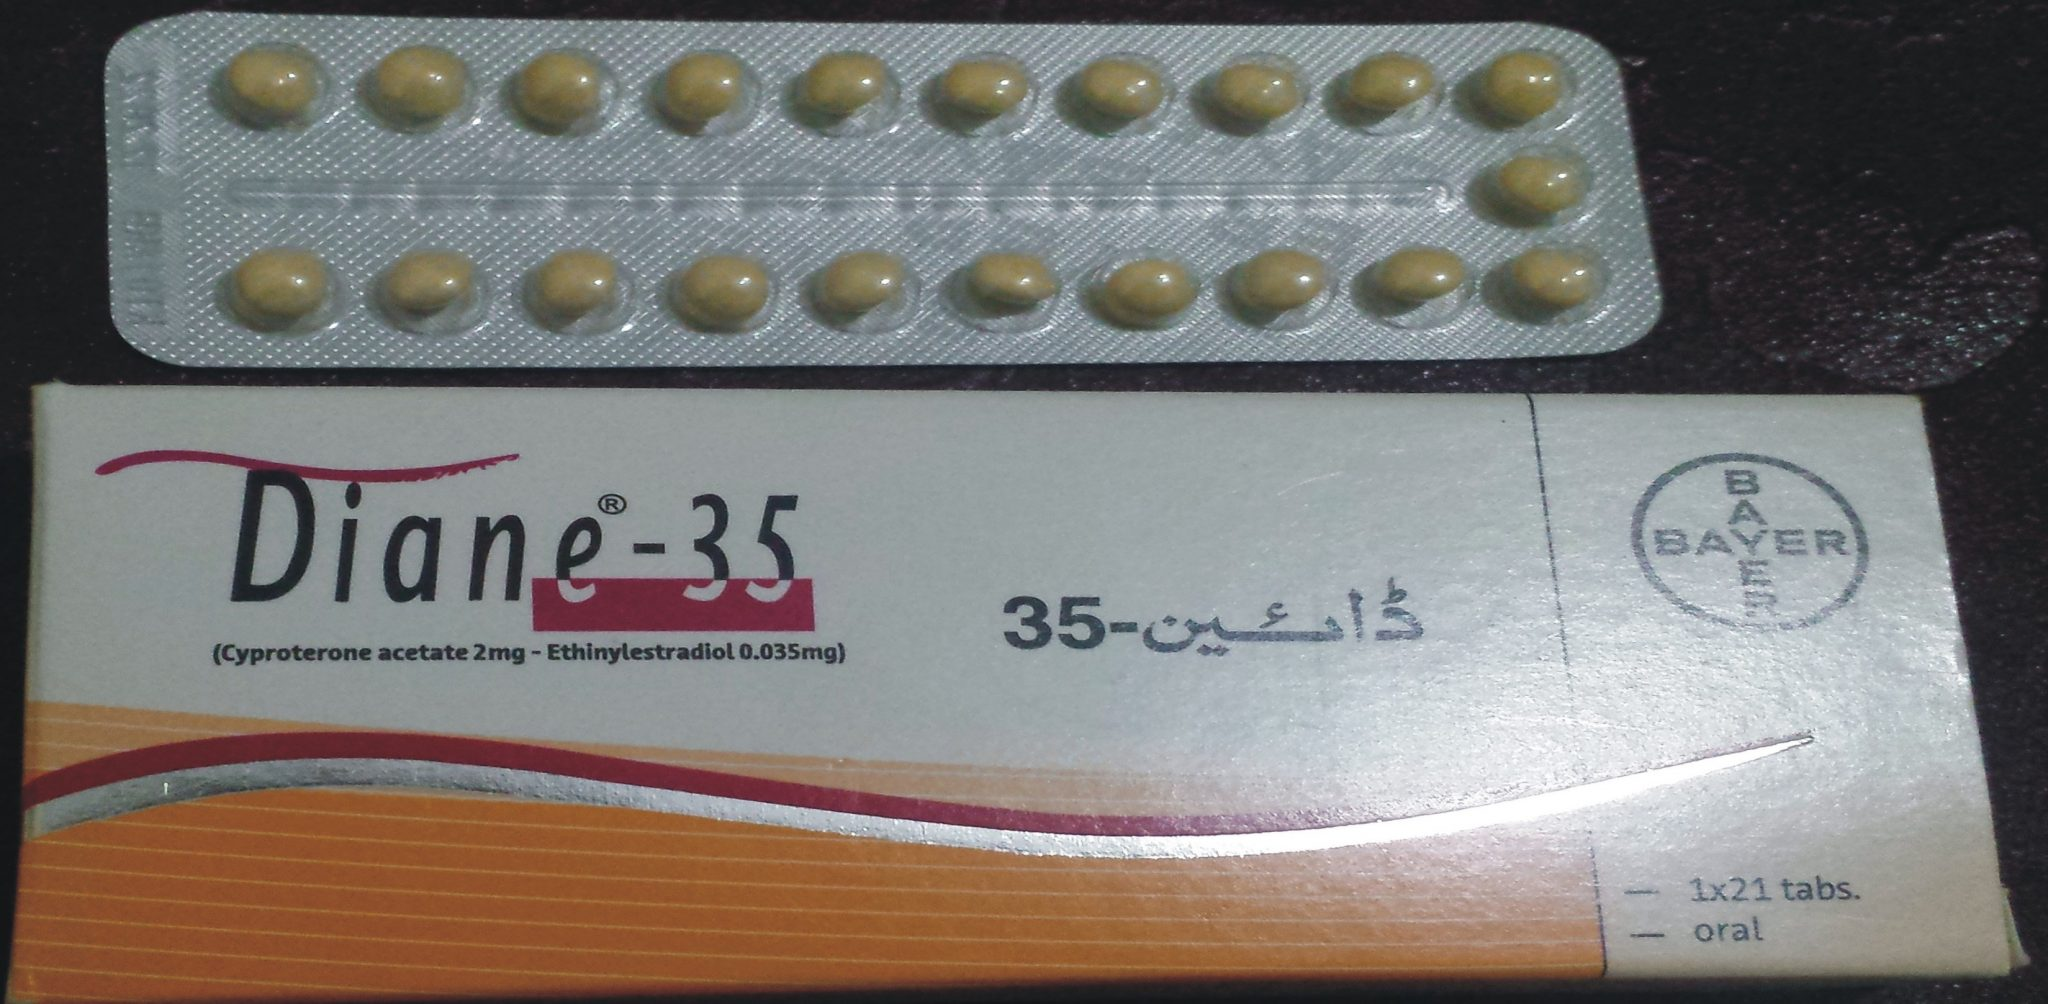 Diane 35 Tablet Is used To Best Oral Contraceptive | Acne